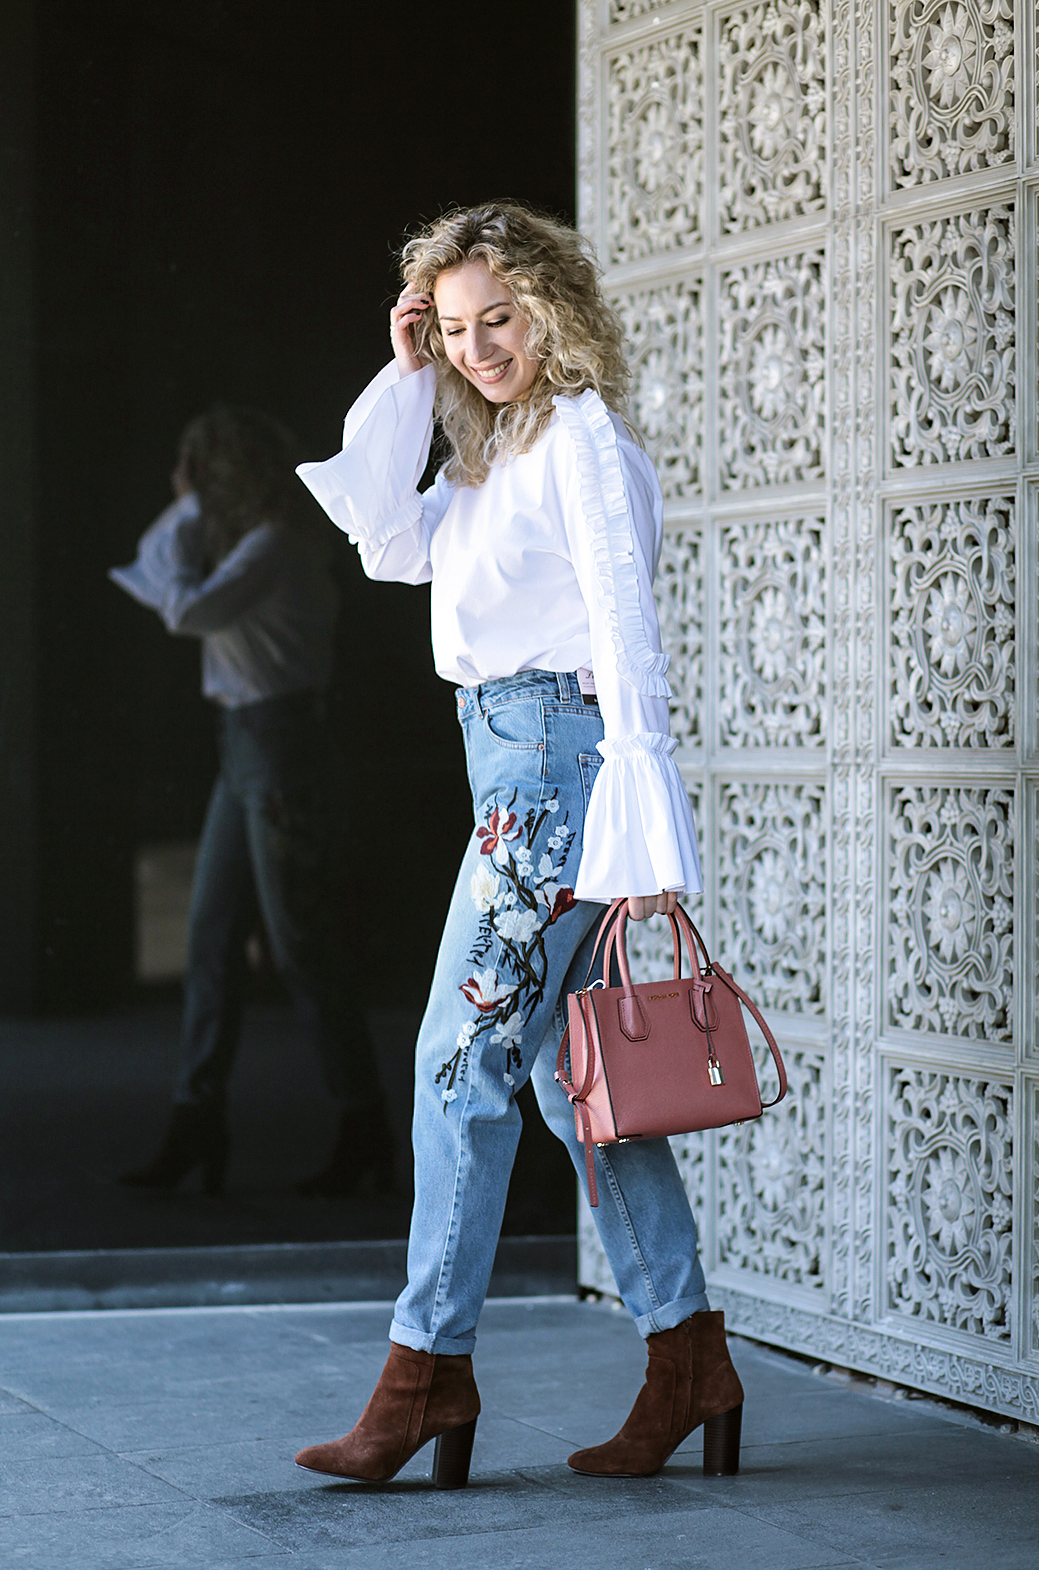 Rita_maslova_ritalifestyle_moscow_fashion_blogger_jeans_flowers_velvet_shoes8